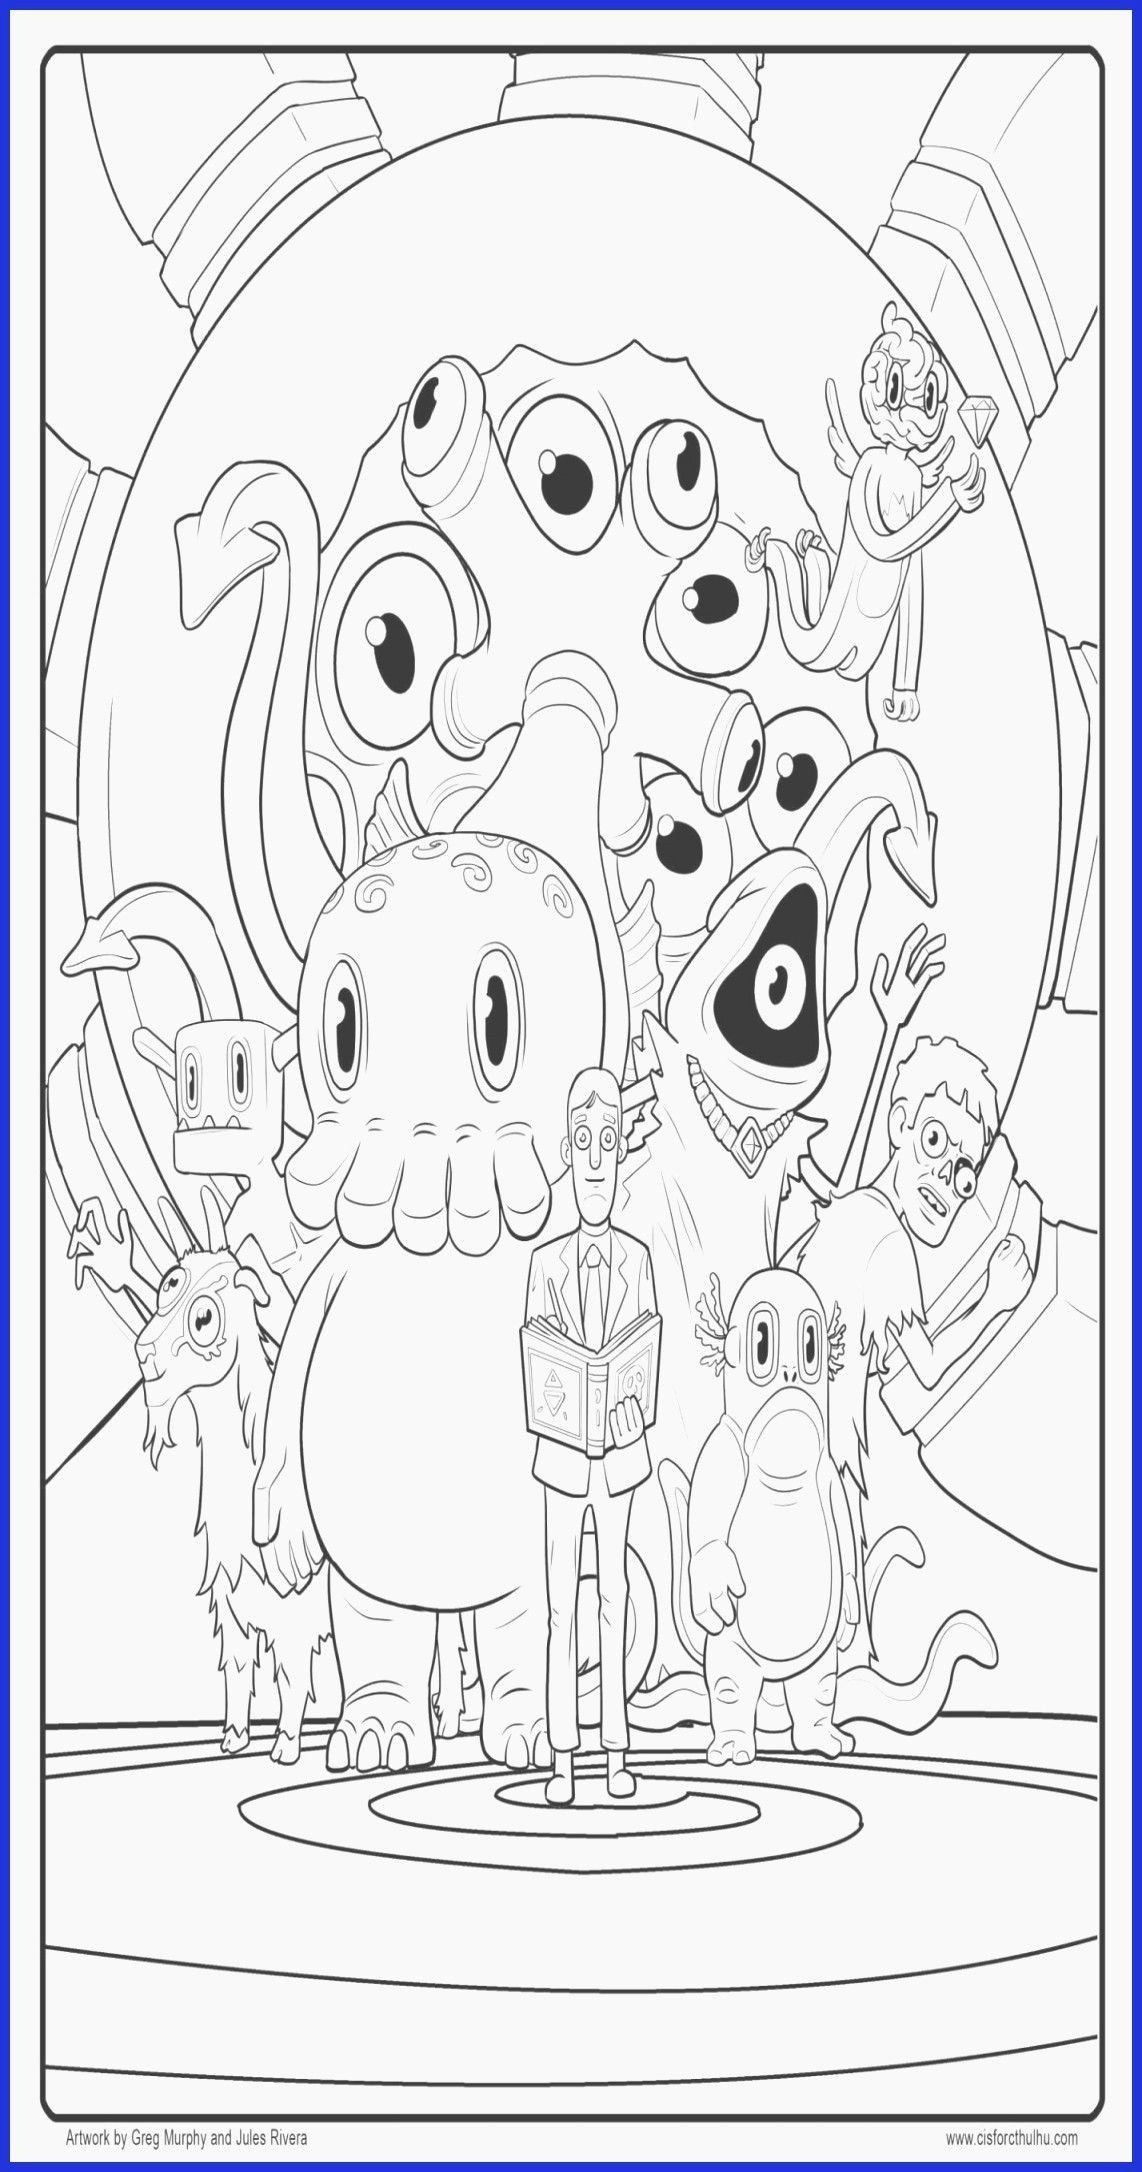 Coloring Animals Eyes Inspirational Unique Bible Coloring Pages In 2020 Unicorn Coloring Pages Bear Coloring Pages Flag Coloring Pages